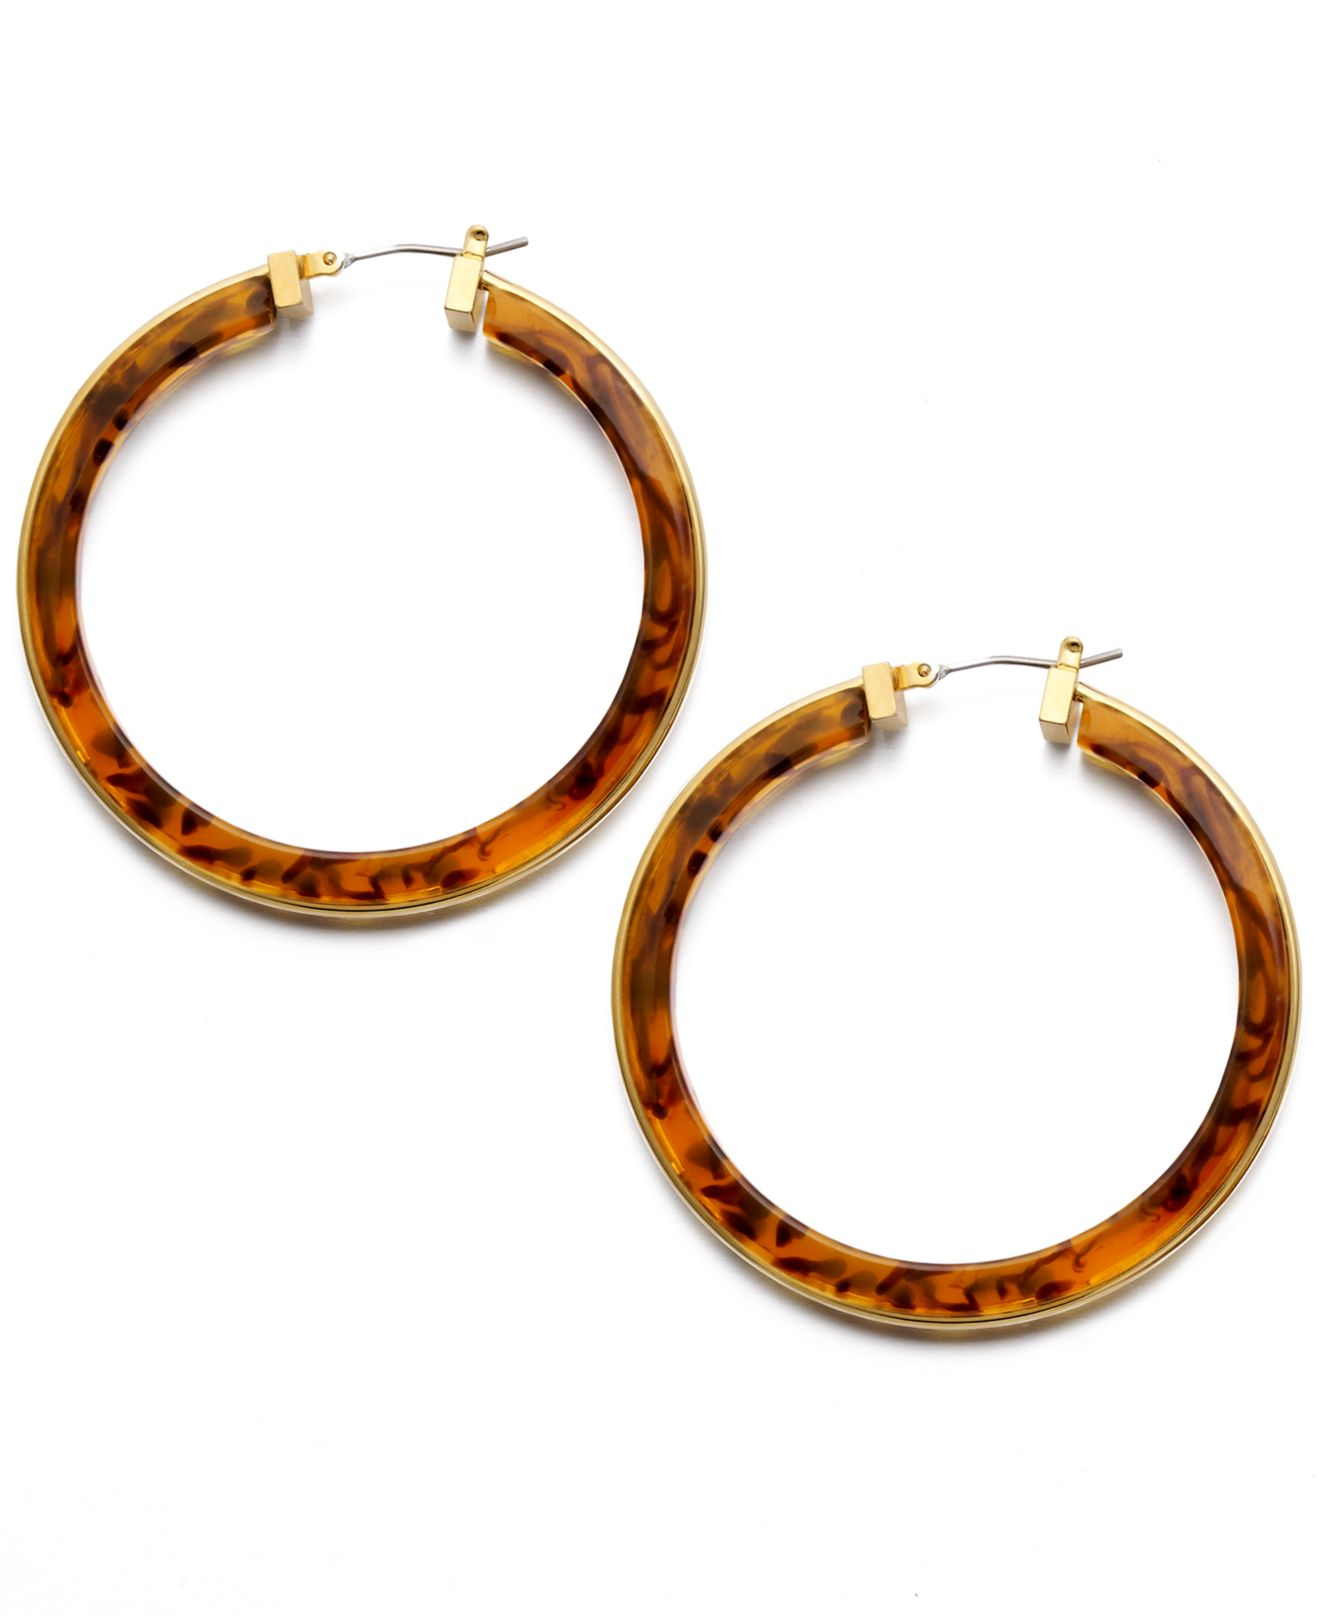 tort queen mj tortoise hoops dancingqueen products earrings jo acrylic dancing mod